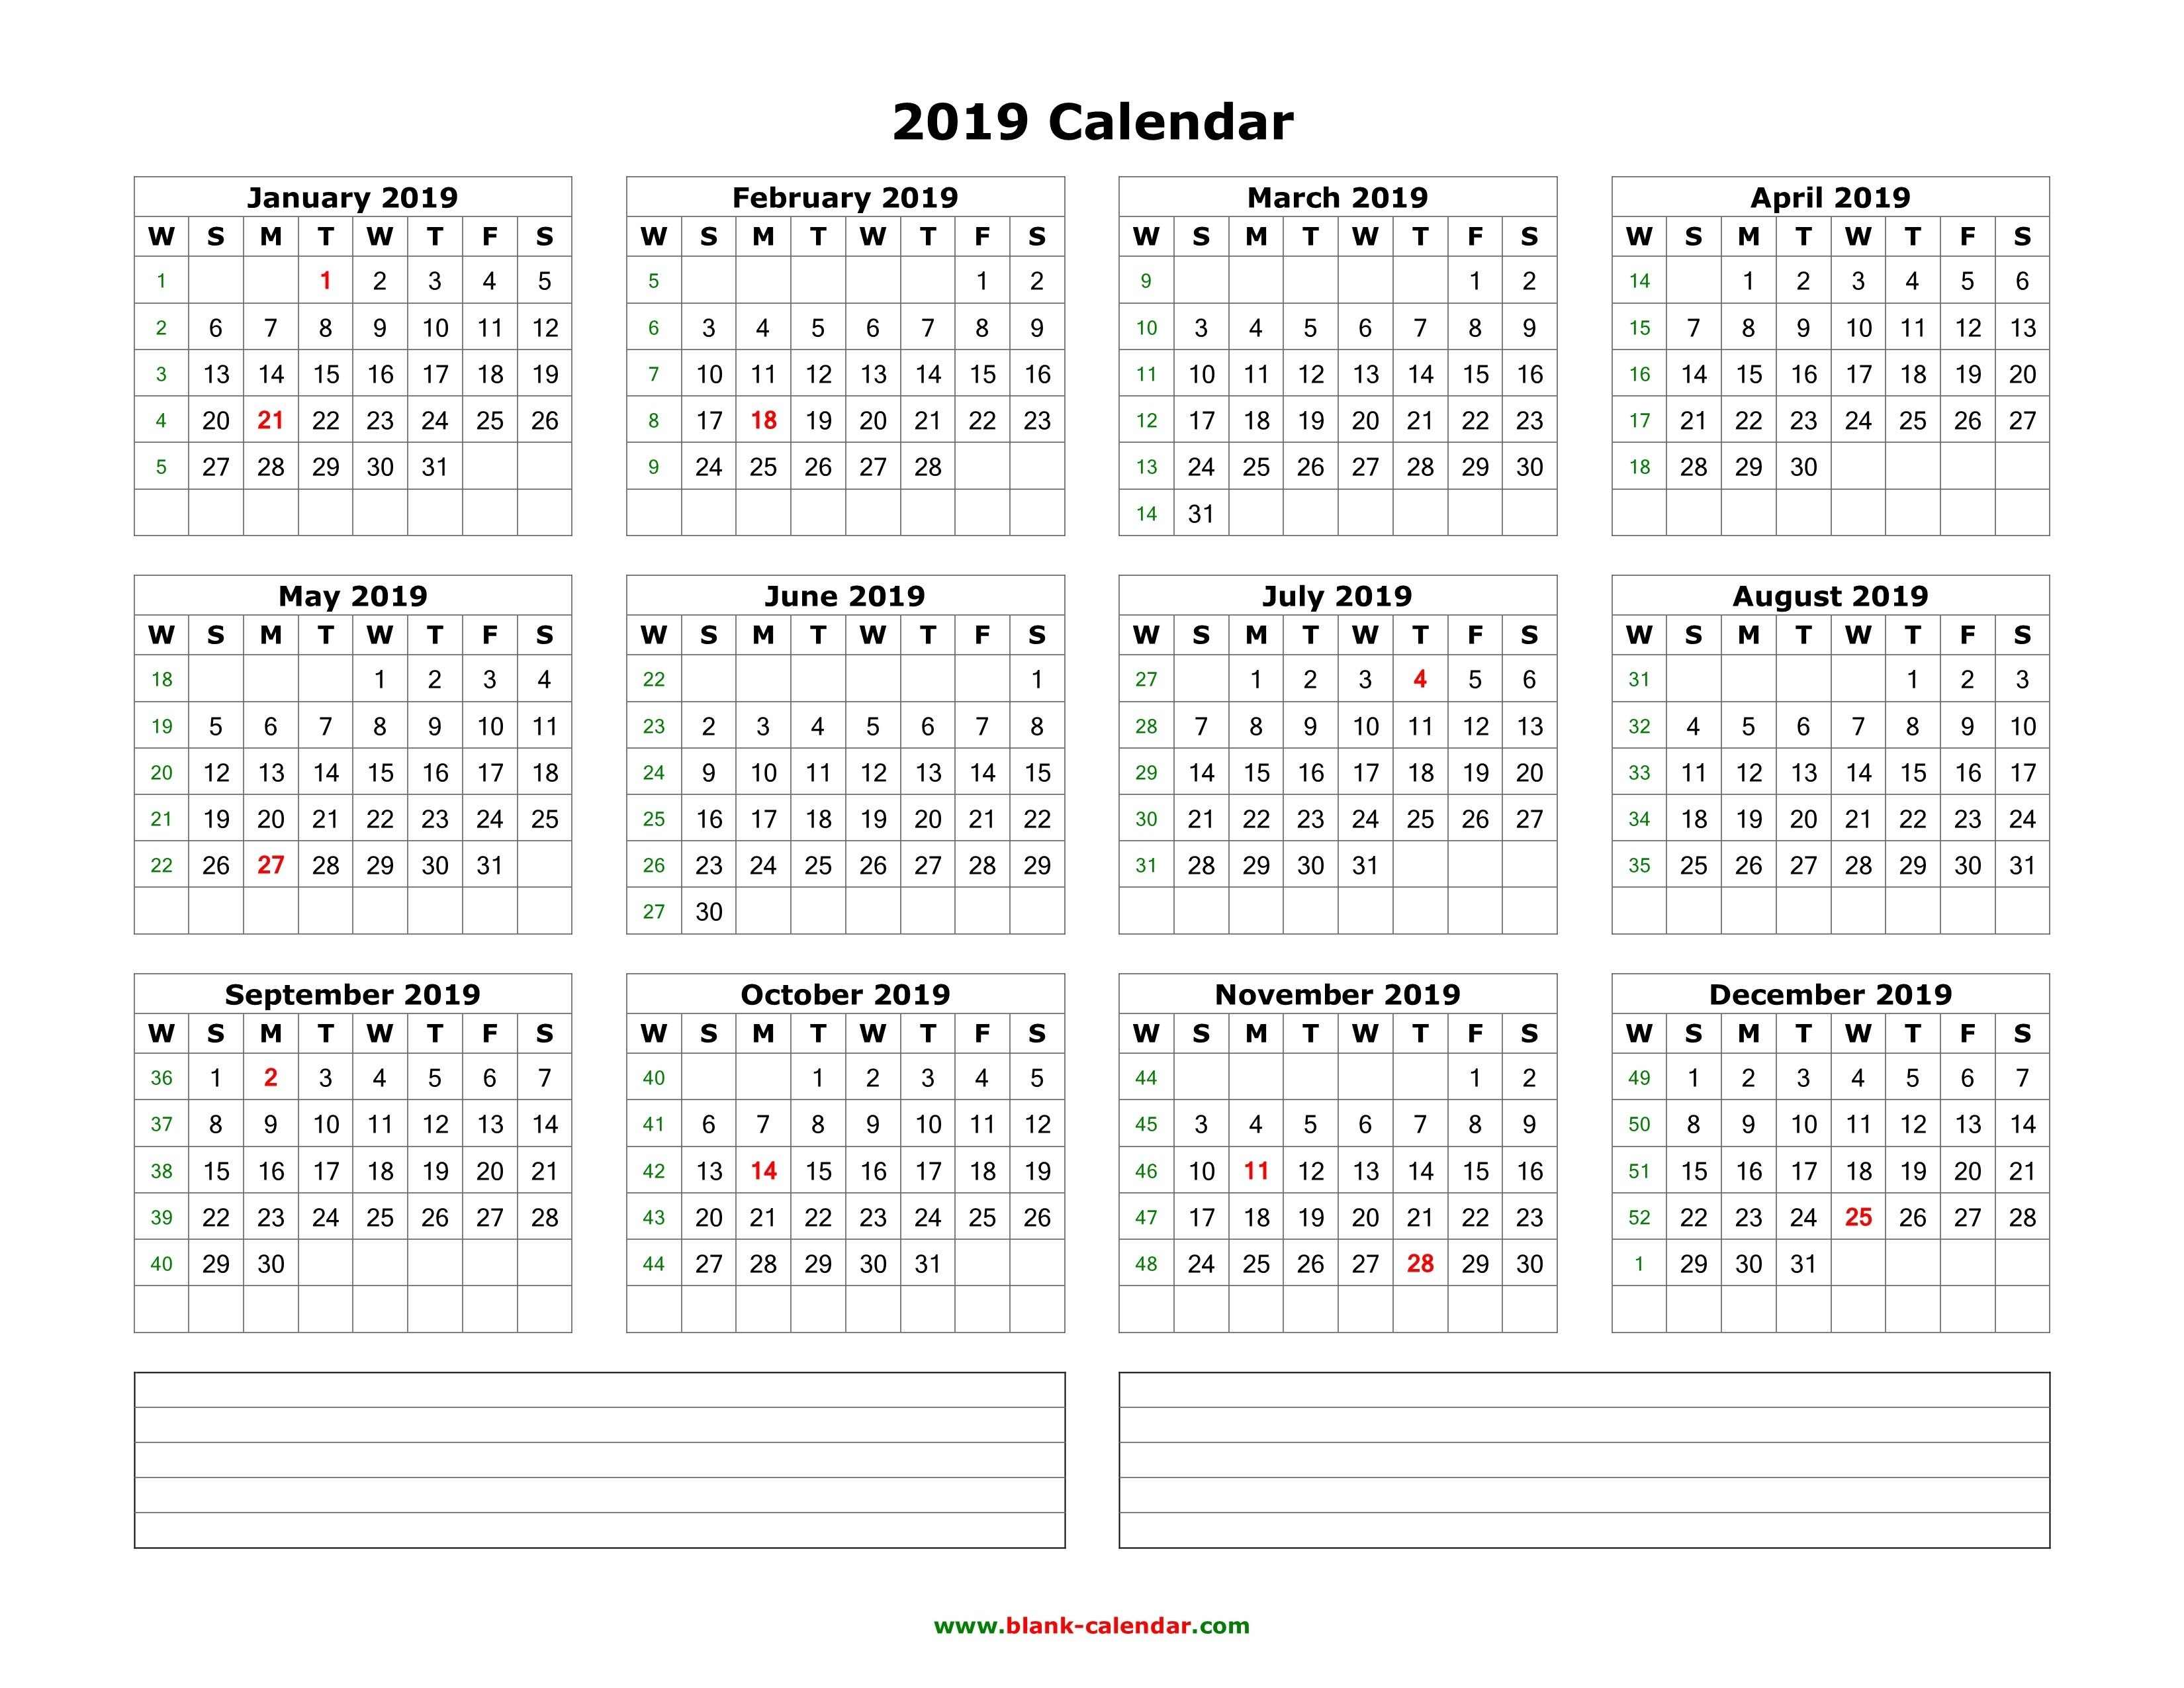 Download Blank Calendar 2019 With Space For Notes (12 Months On One Calendar 2019 12